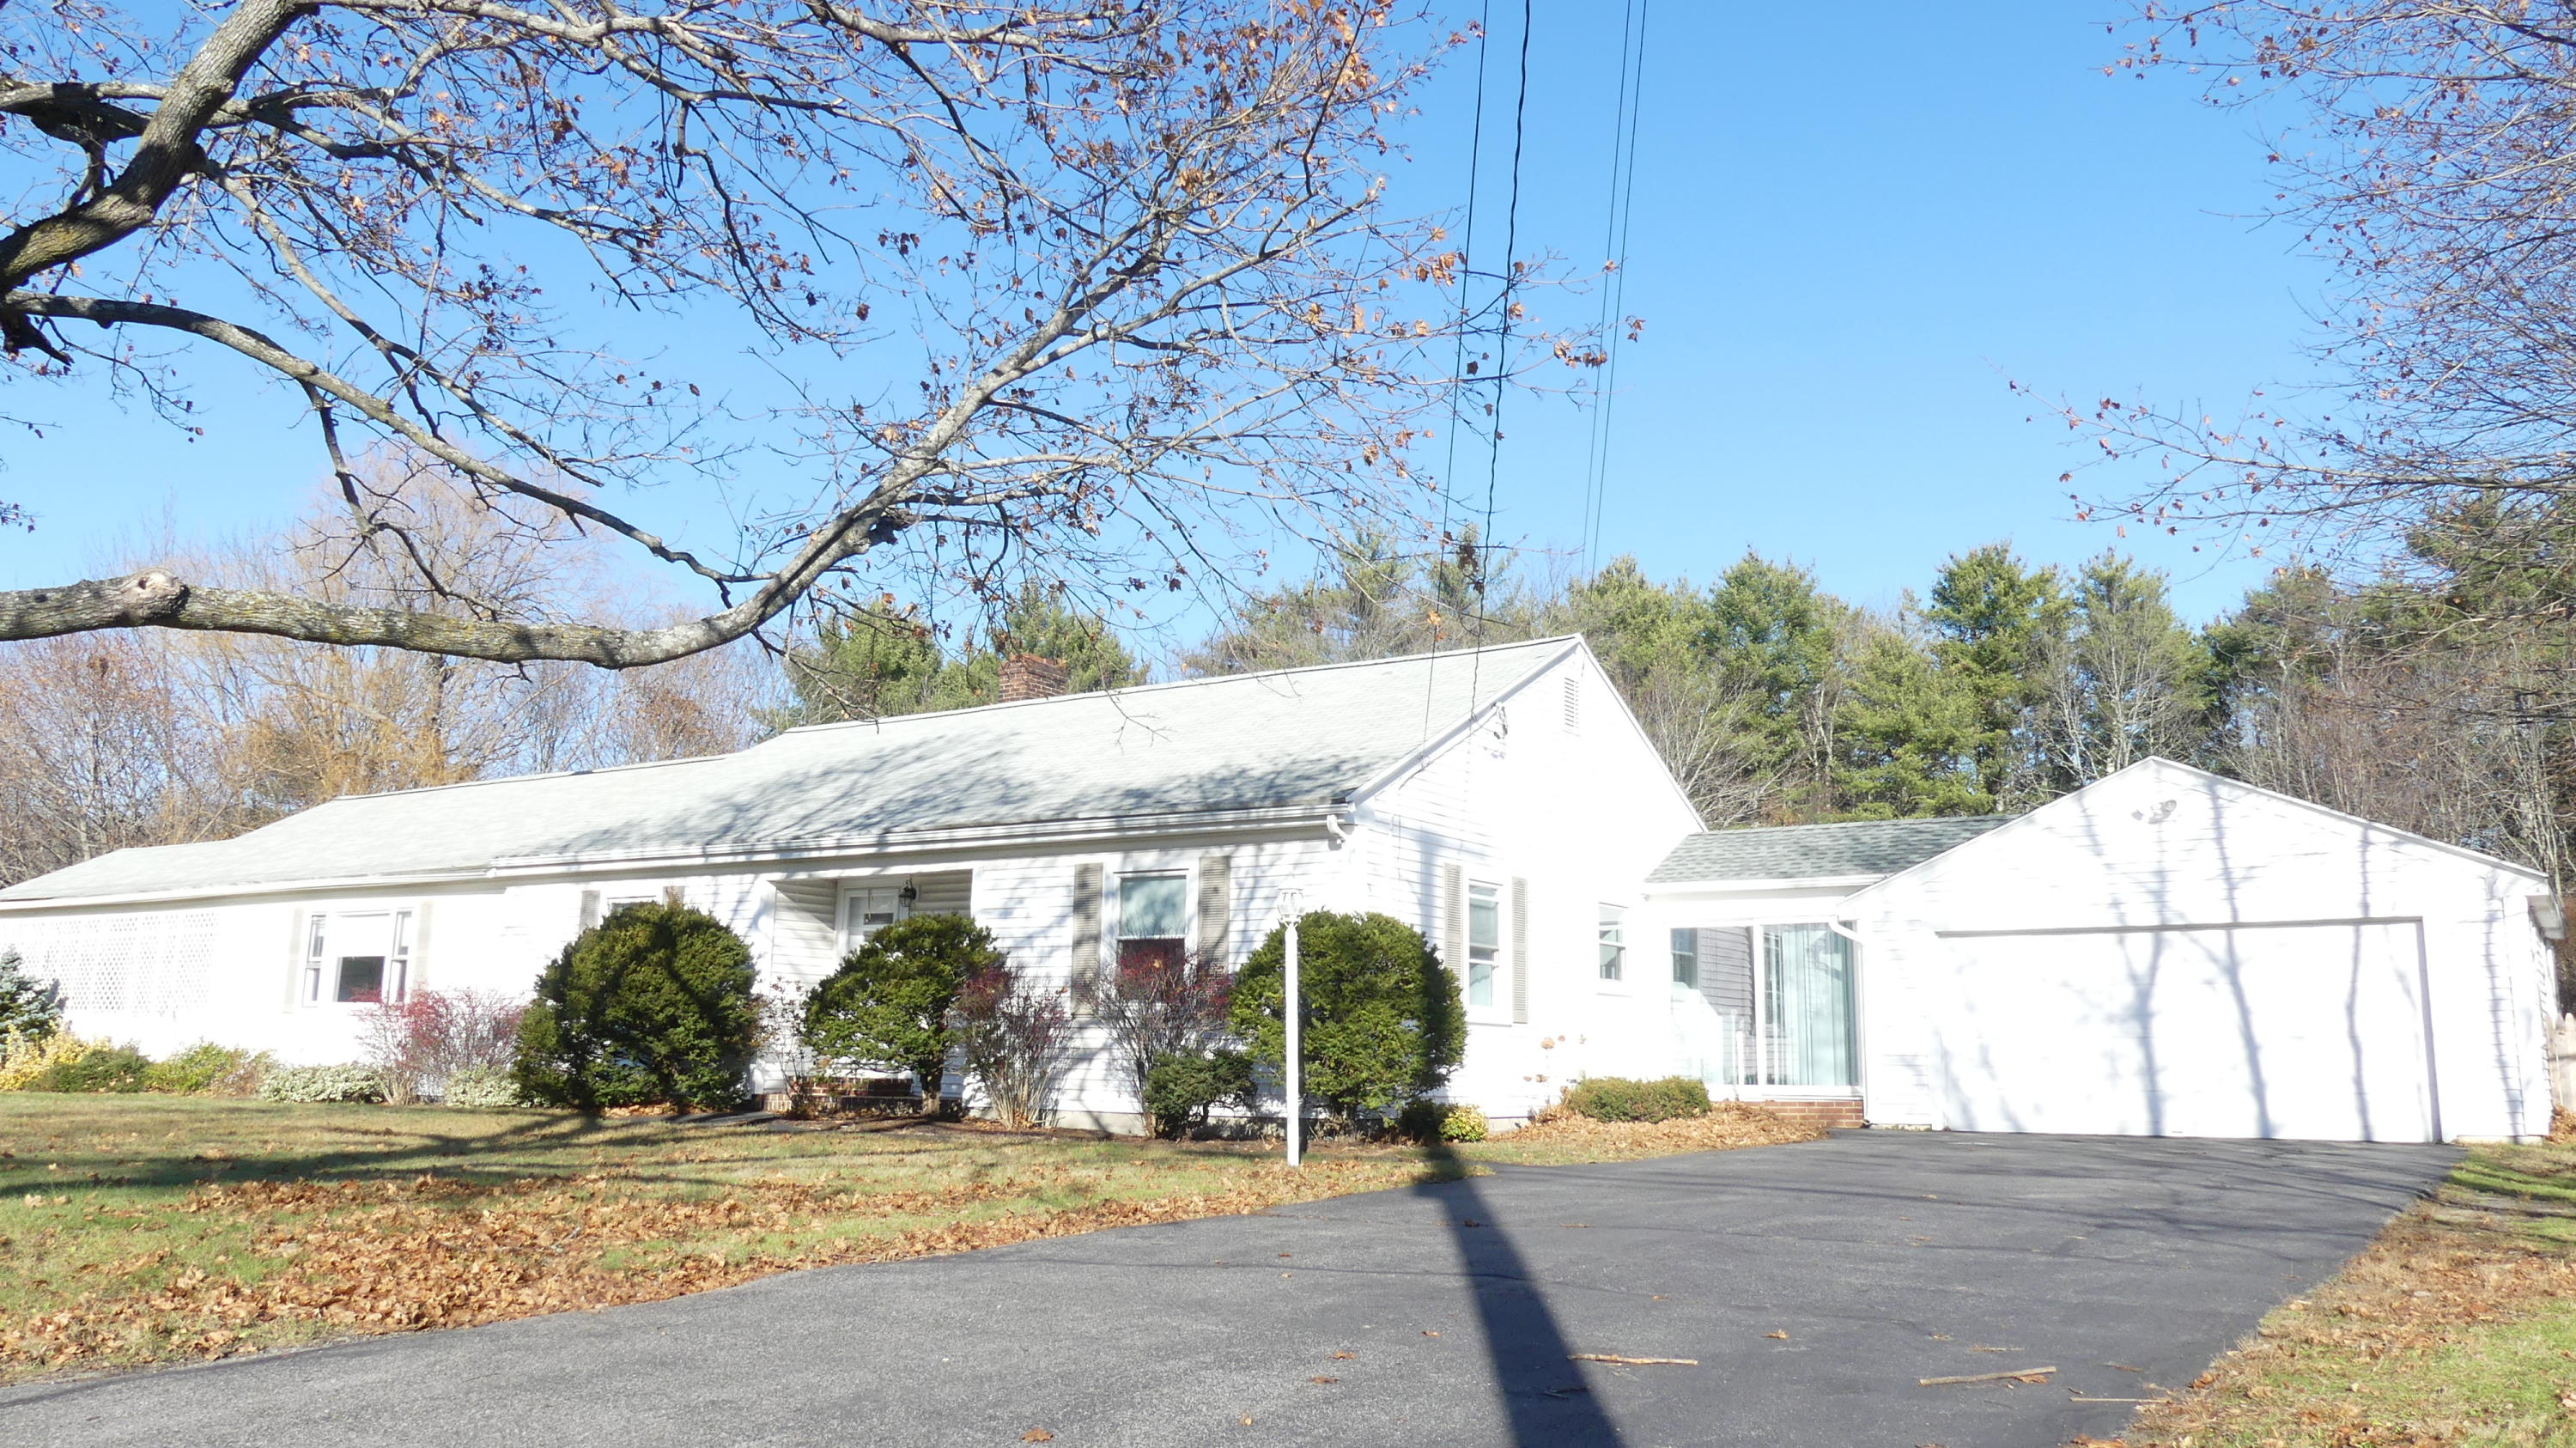 Main image for MLS listing 1477472